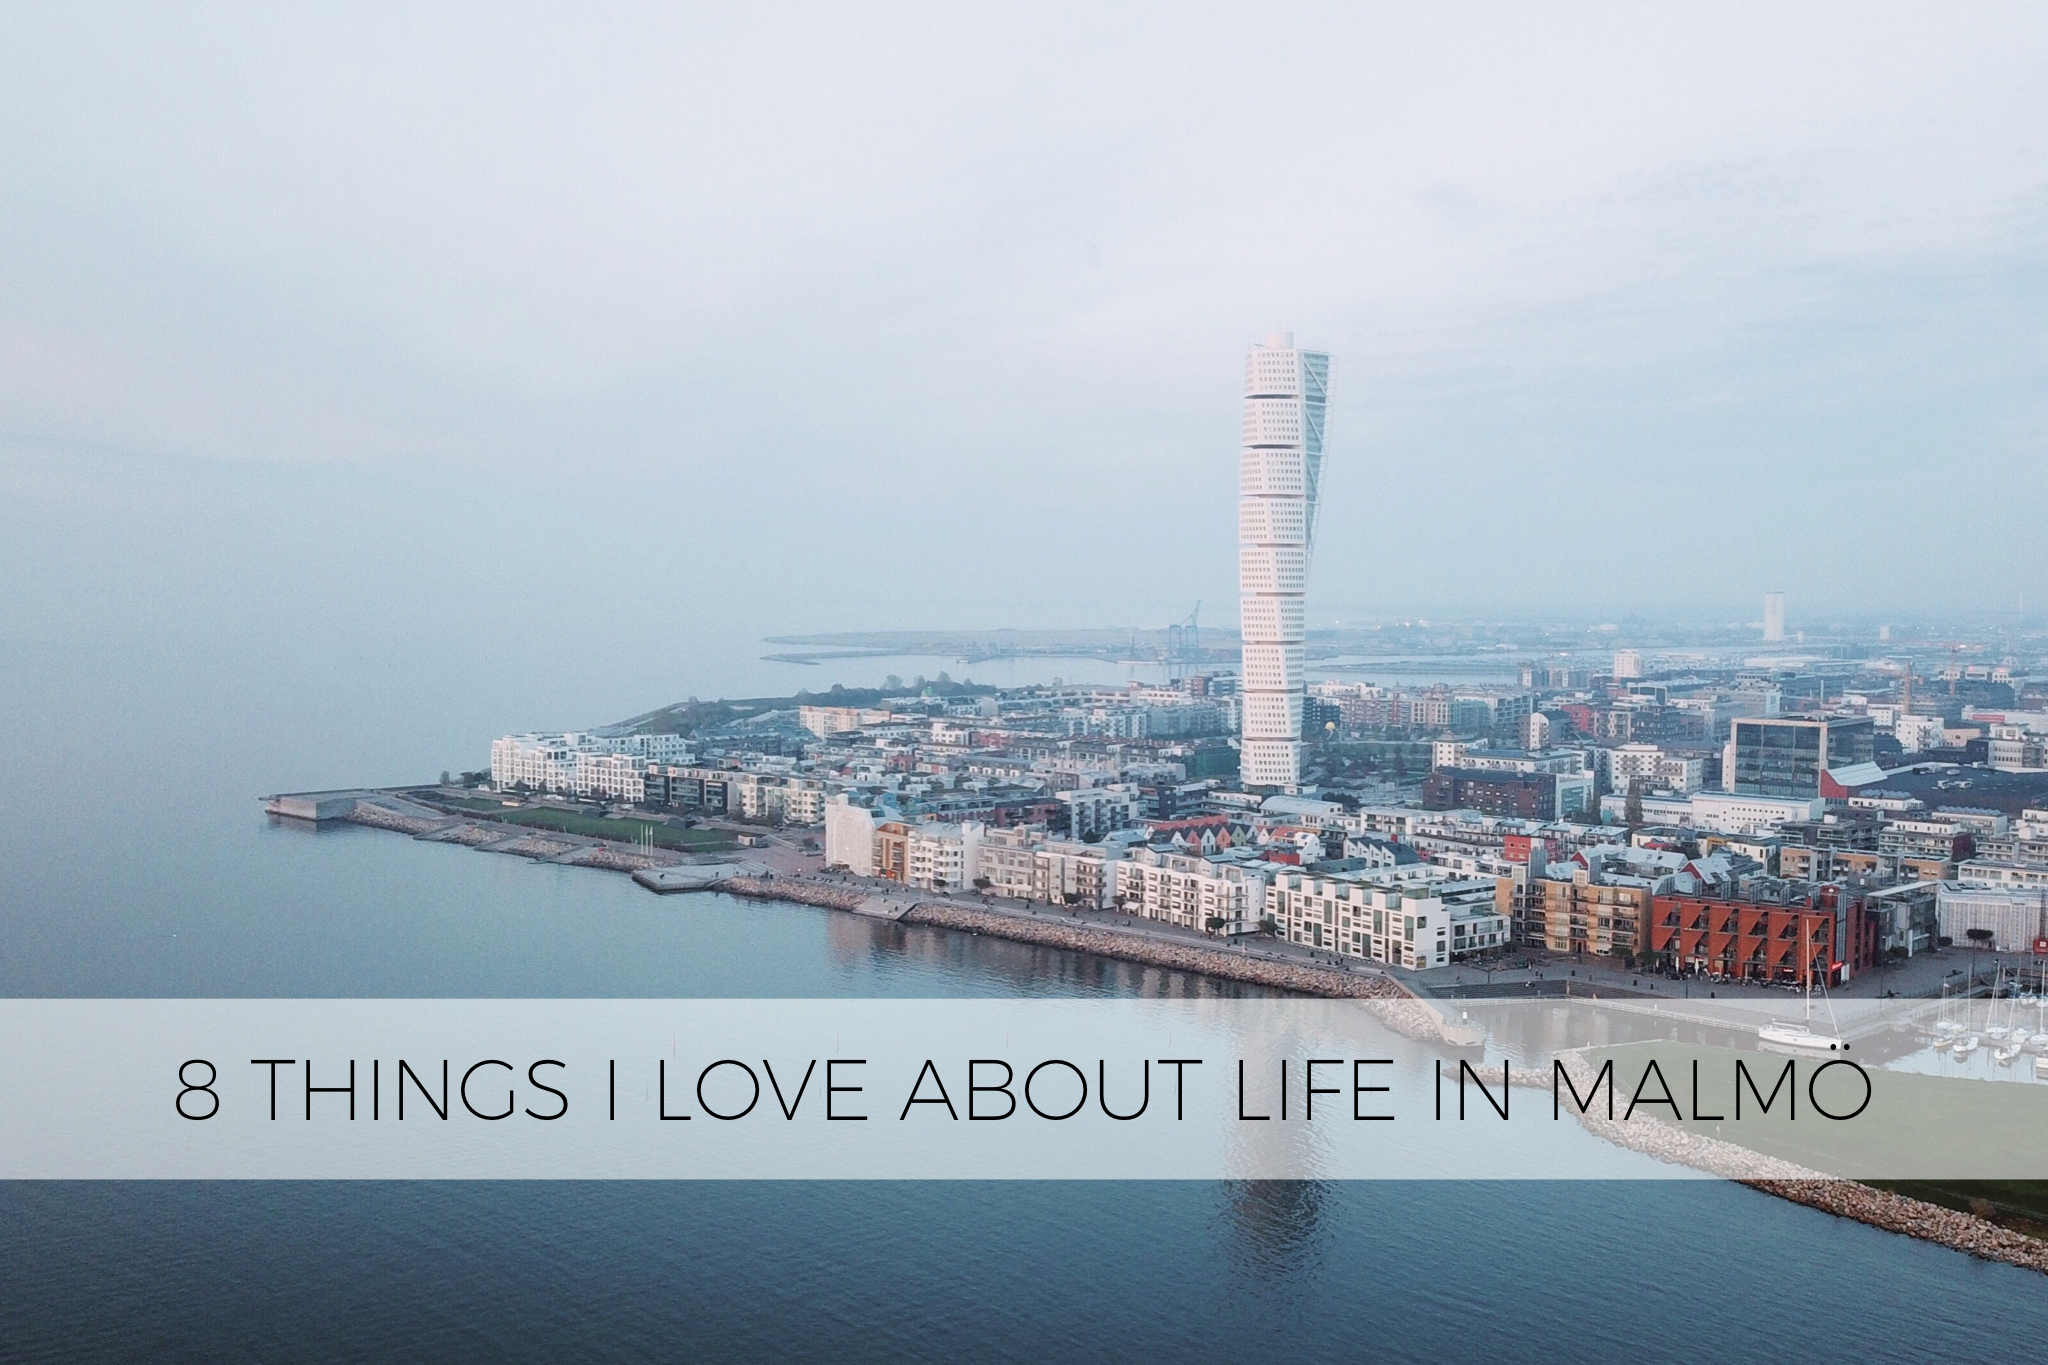 8 Things I Love About Living in Malmo, Sweden